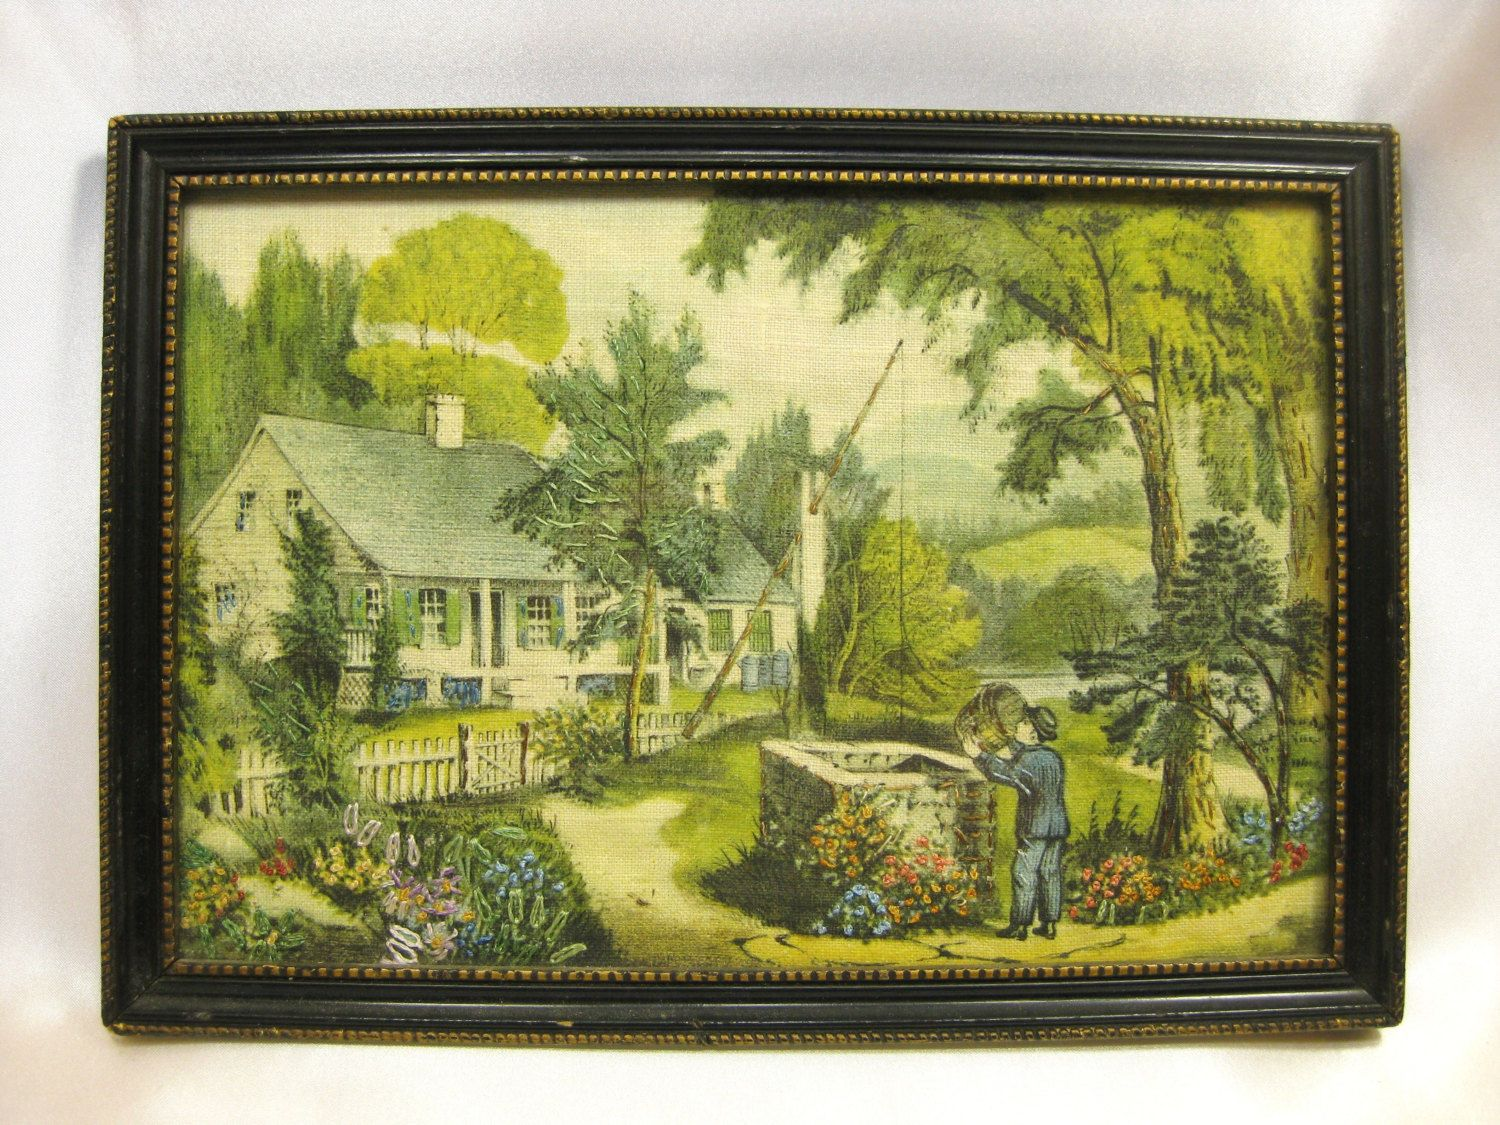 Antique Tapestry 10.5\'\' Vintage Framed Wall Hanging Embroidery ...